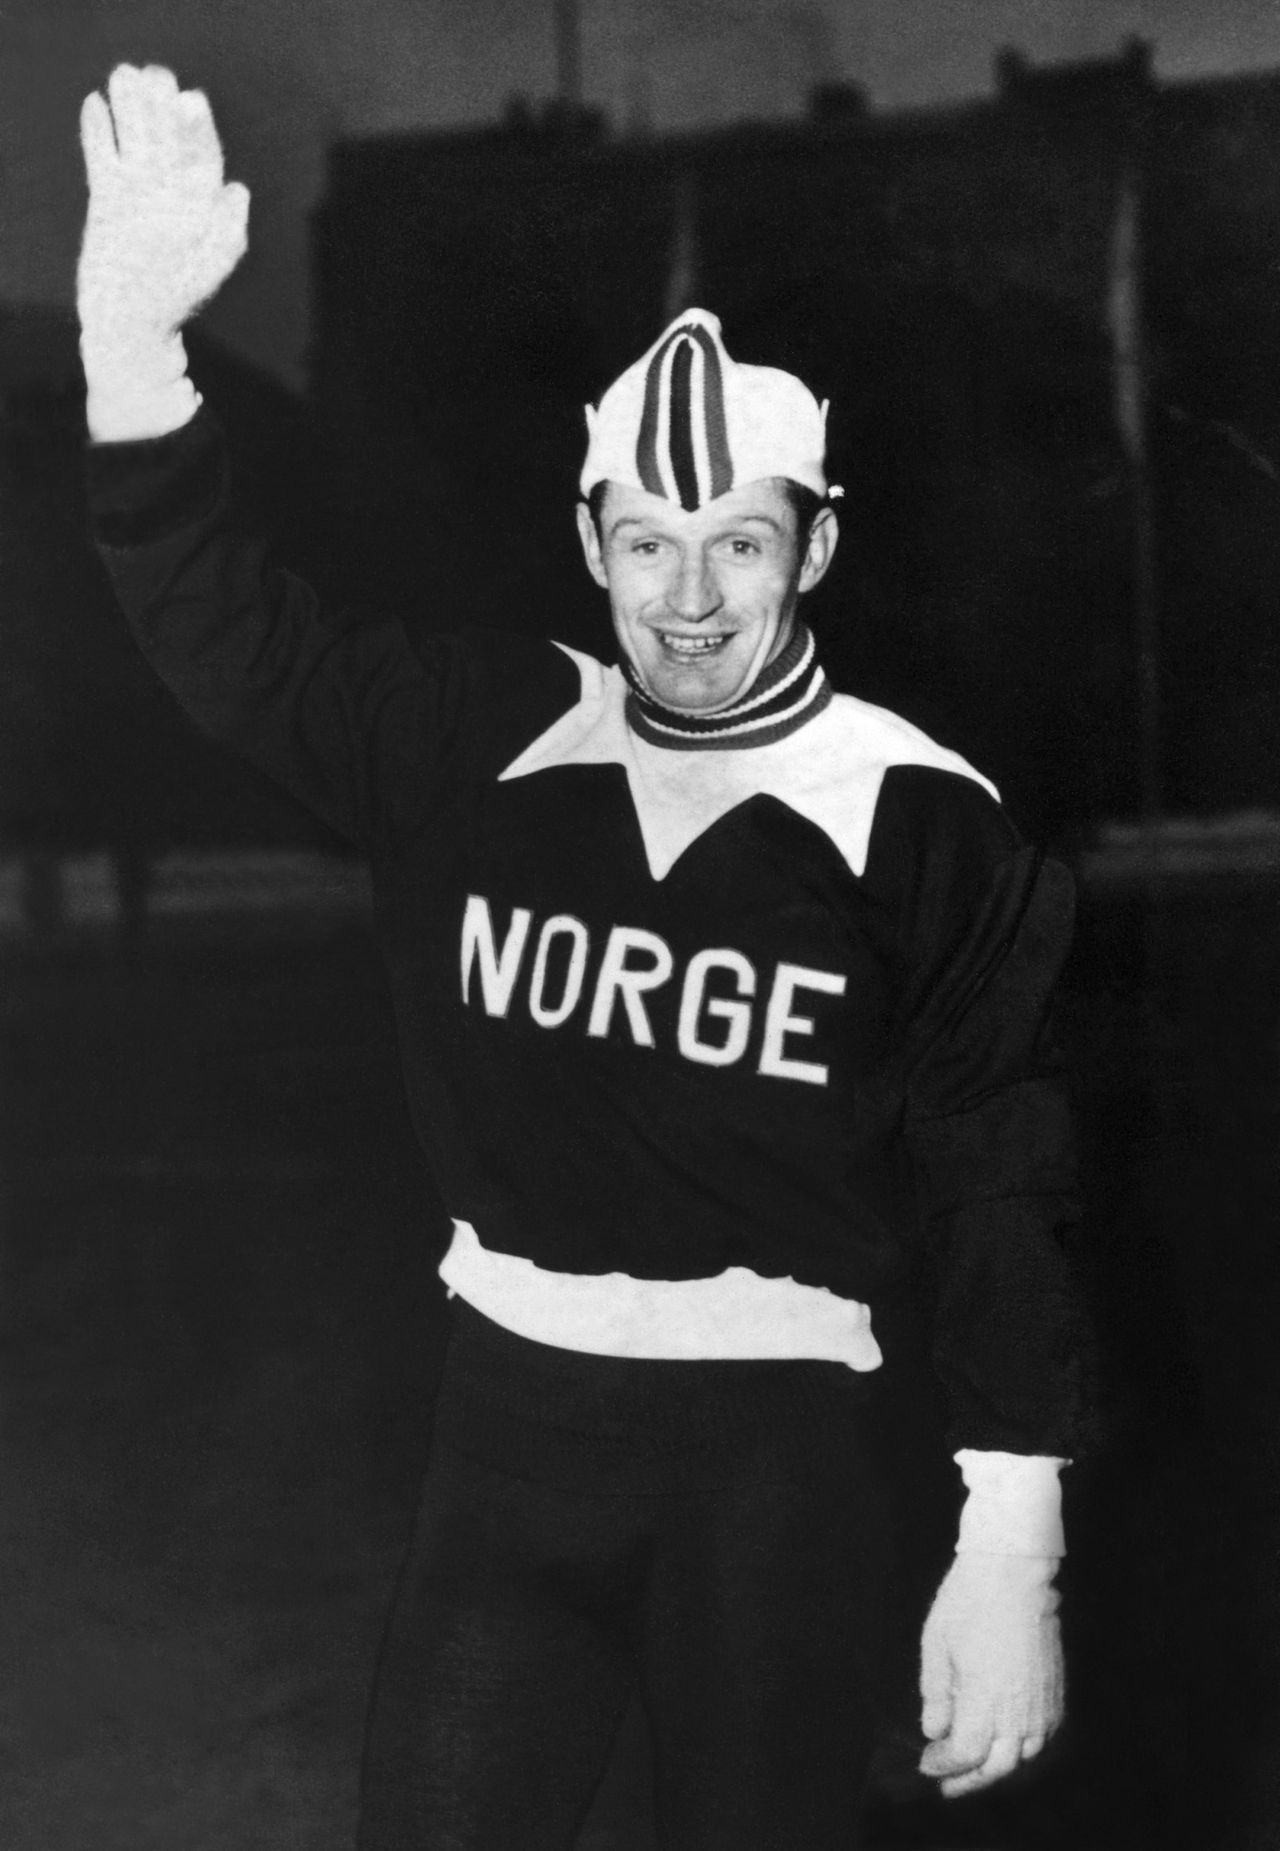 (FILES) Picture taken on February 19, 1952 shows Norwegian speed skater Hjalmar Andersen as he waves to photographers during the Winter Olympic Games in Oslo. Andersen, who won three gold medals at the 1952 Oslo Winter Olympics, has died at the age of 90, local media reported on March 27, 2013. AFP PHOTO